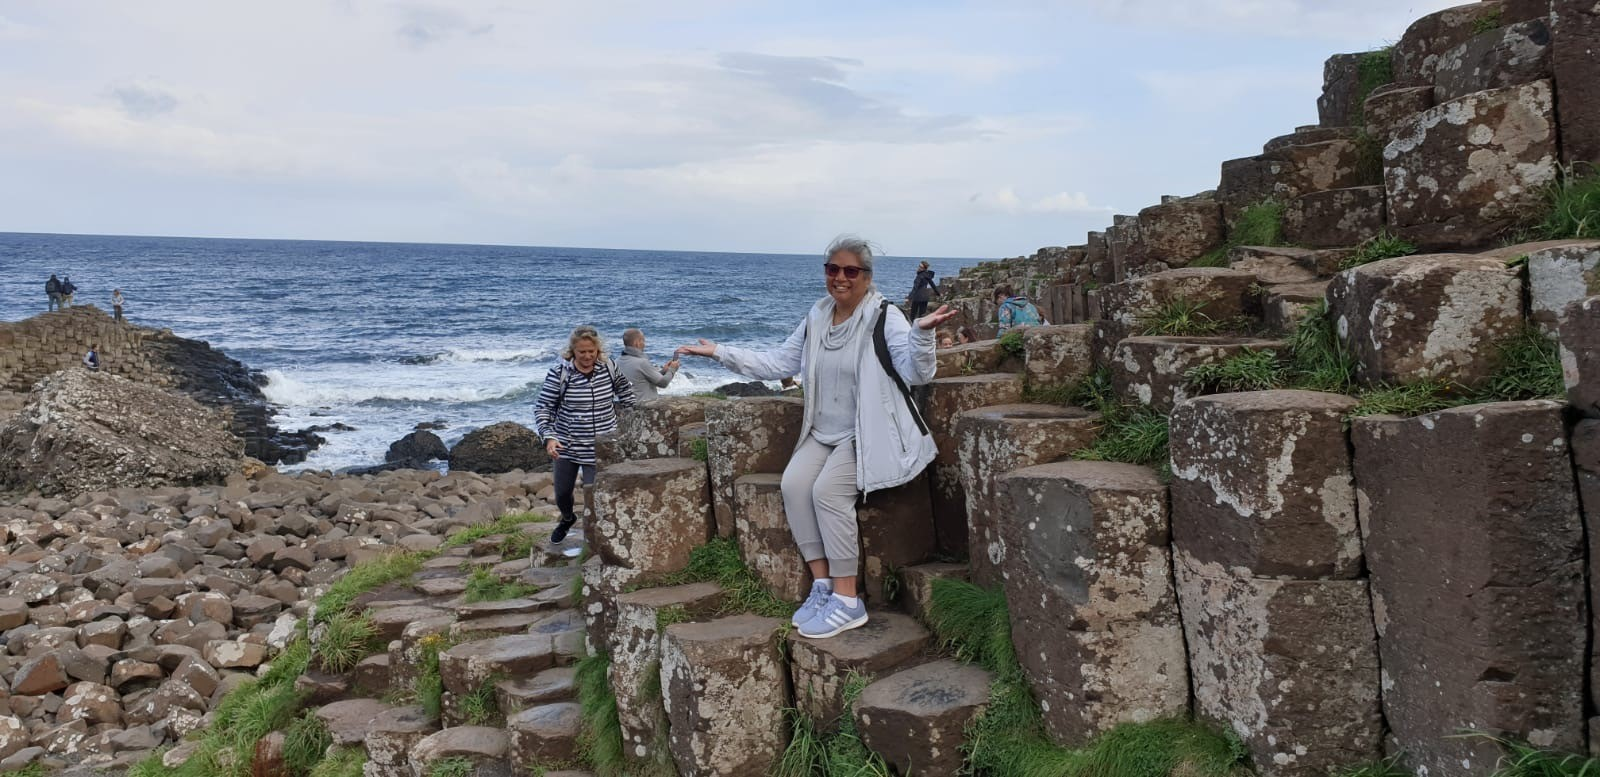 Exploring Giant's Causeway in Northern Ireland (photo courtesy of Jodine Clement)